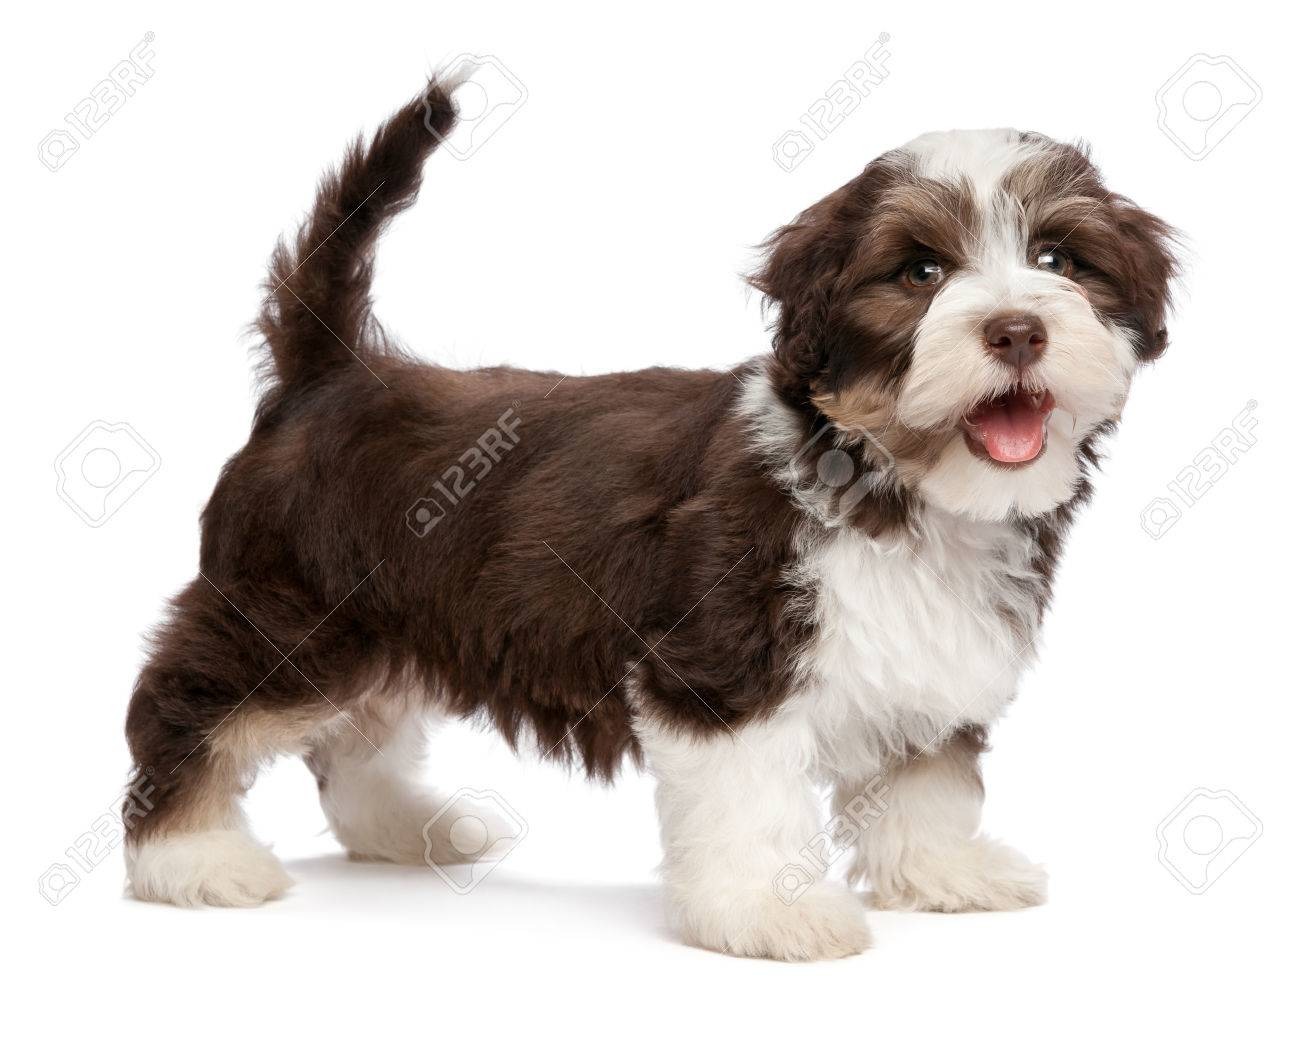 A beautiful smiling dark chocolate and white colored havanese